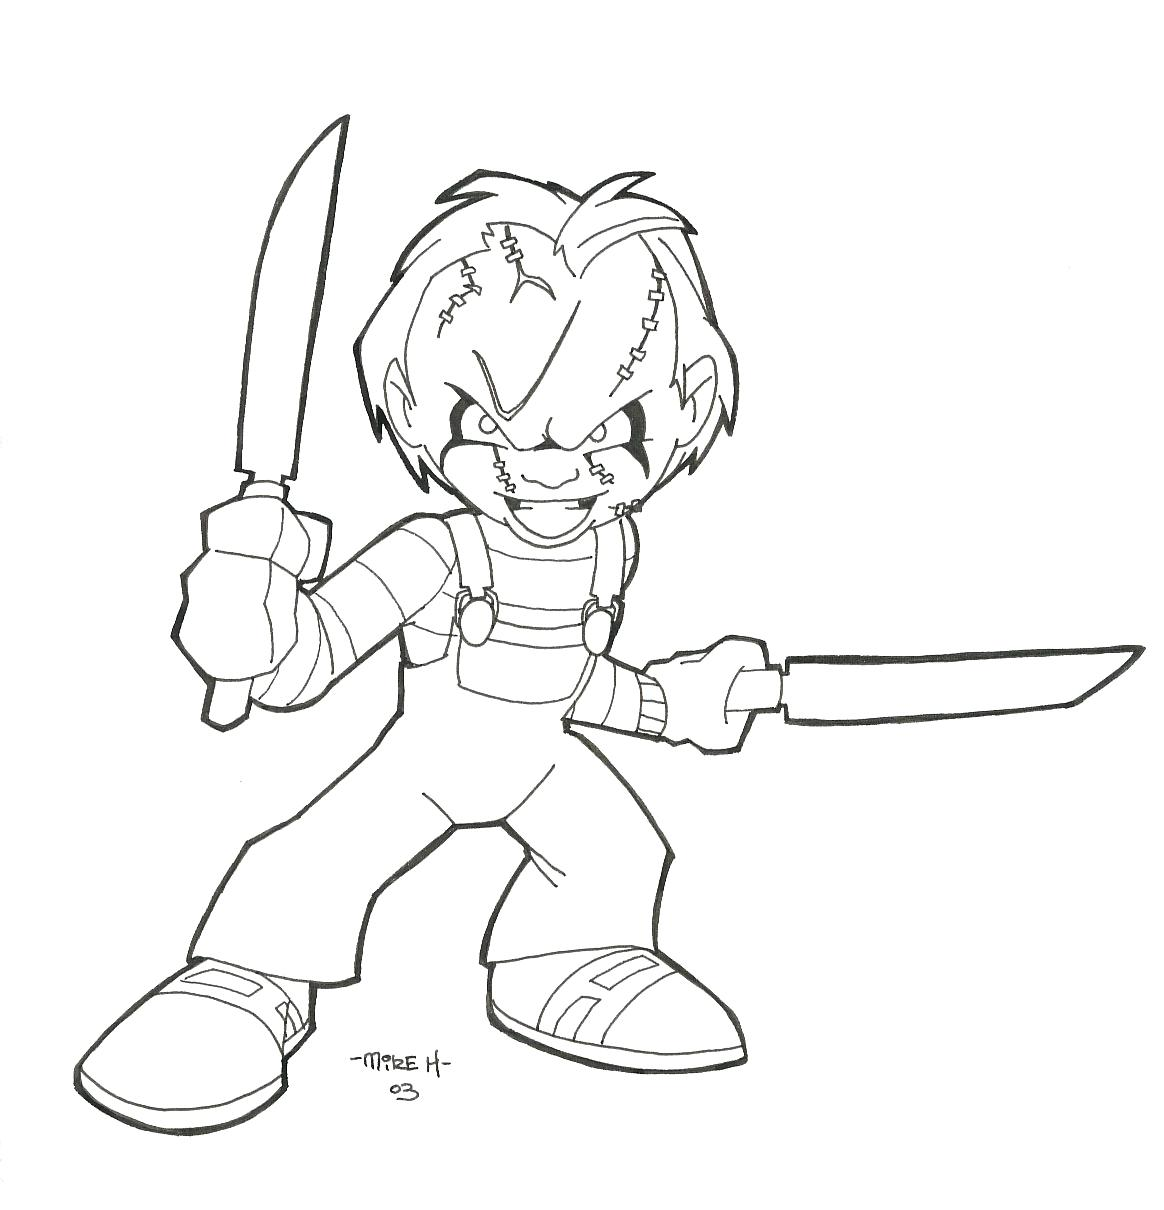 Chucky Doll Drawing at GetDrawings | Free download